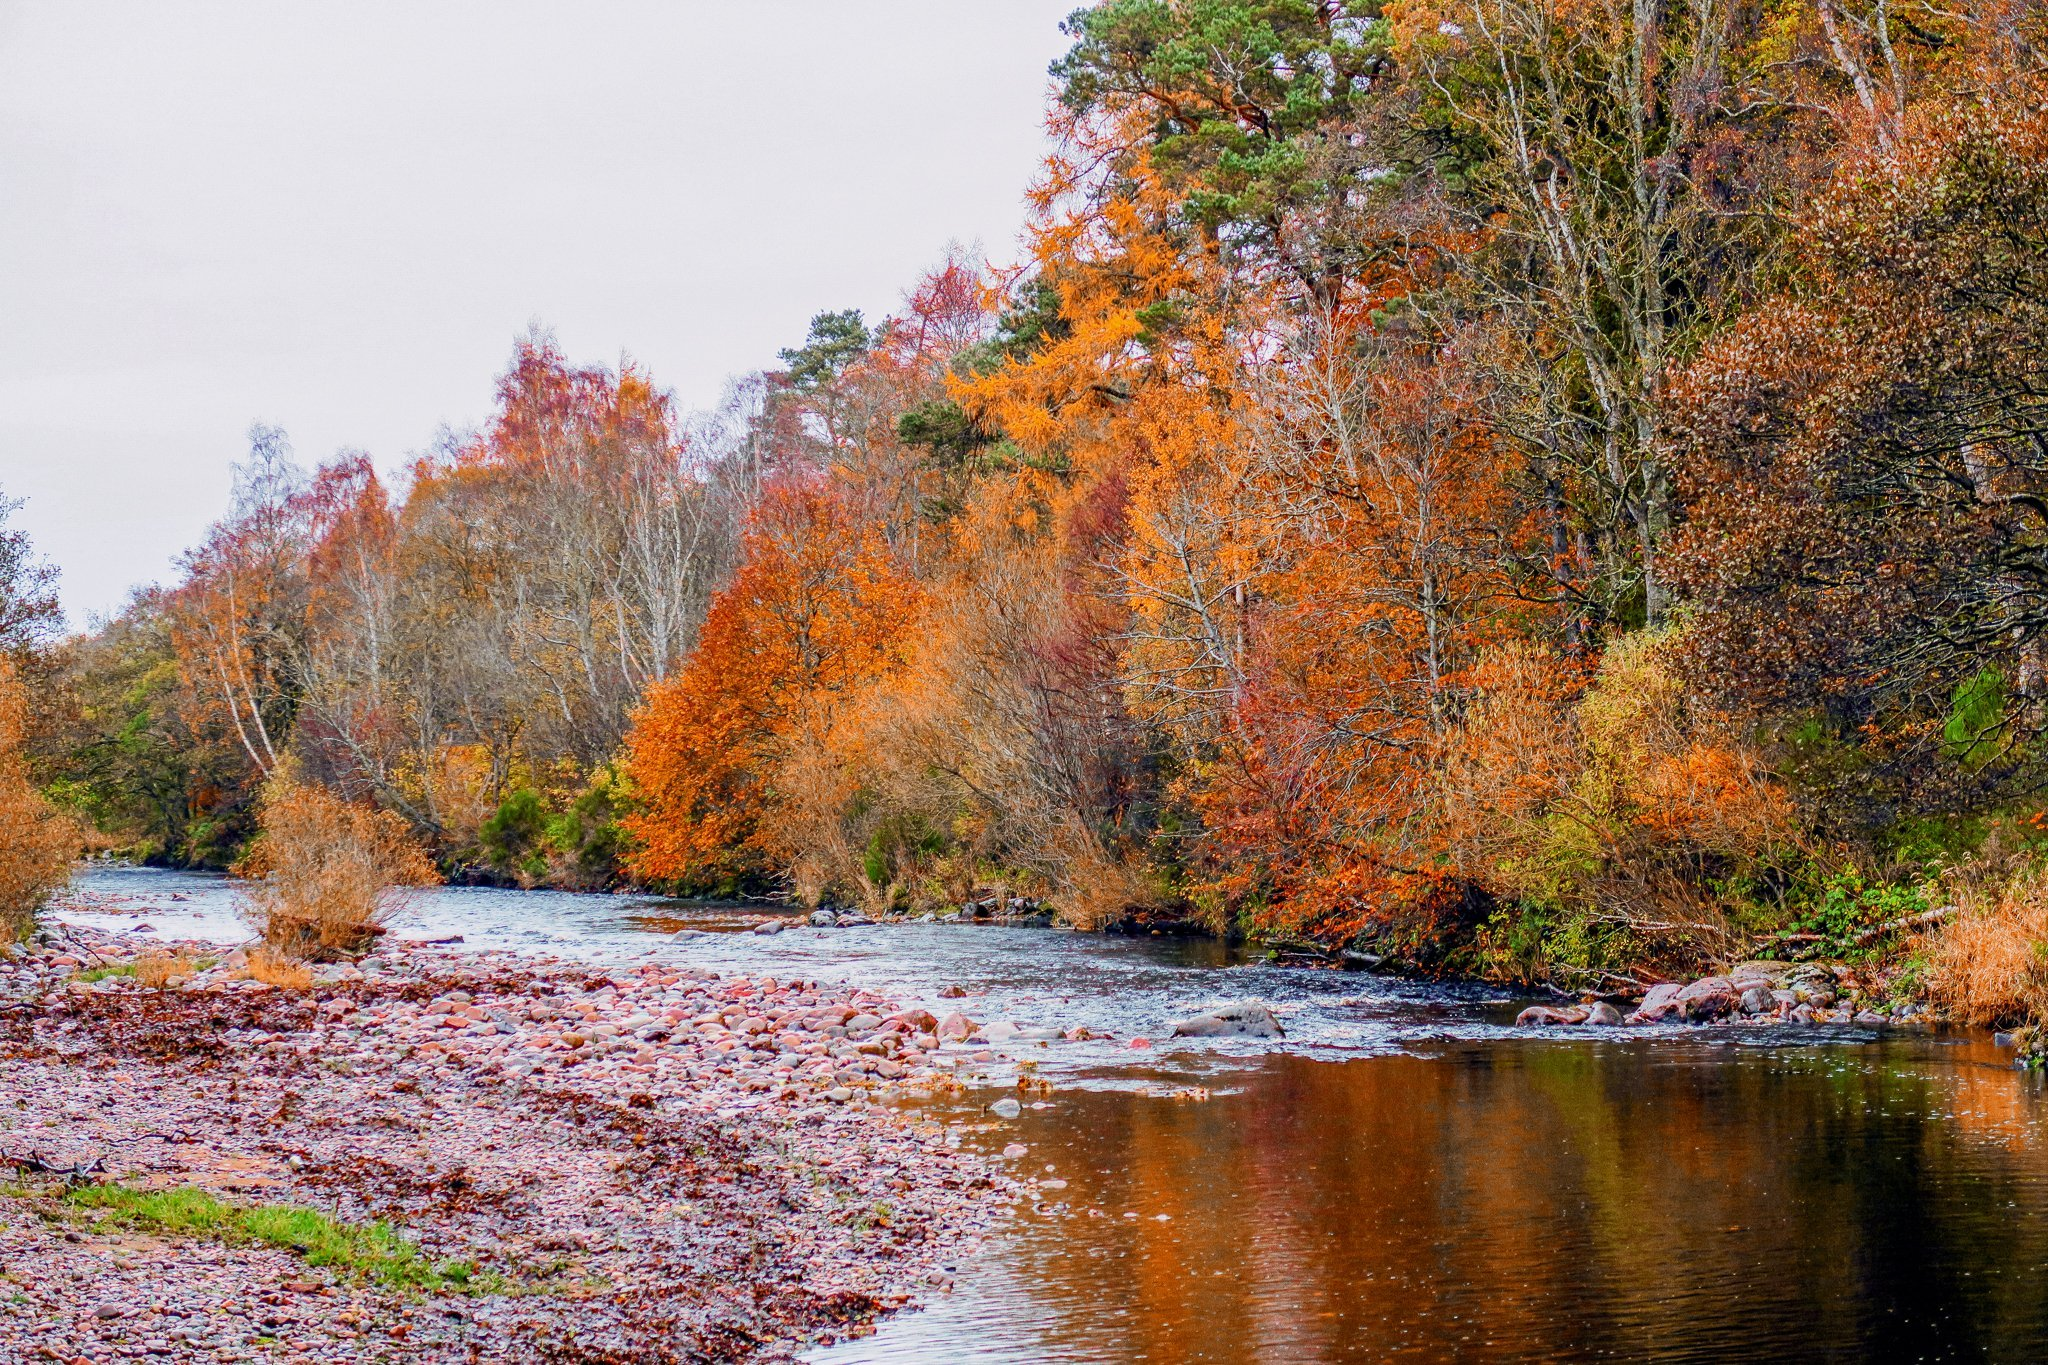 Trees in vibrant autumn colours are reflected in the River Nairn